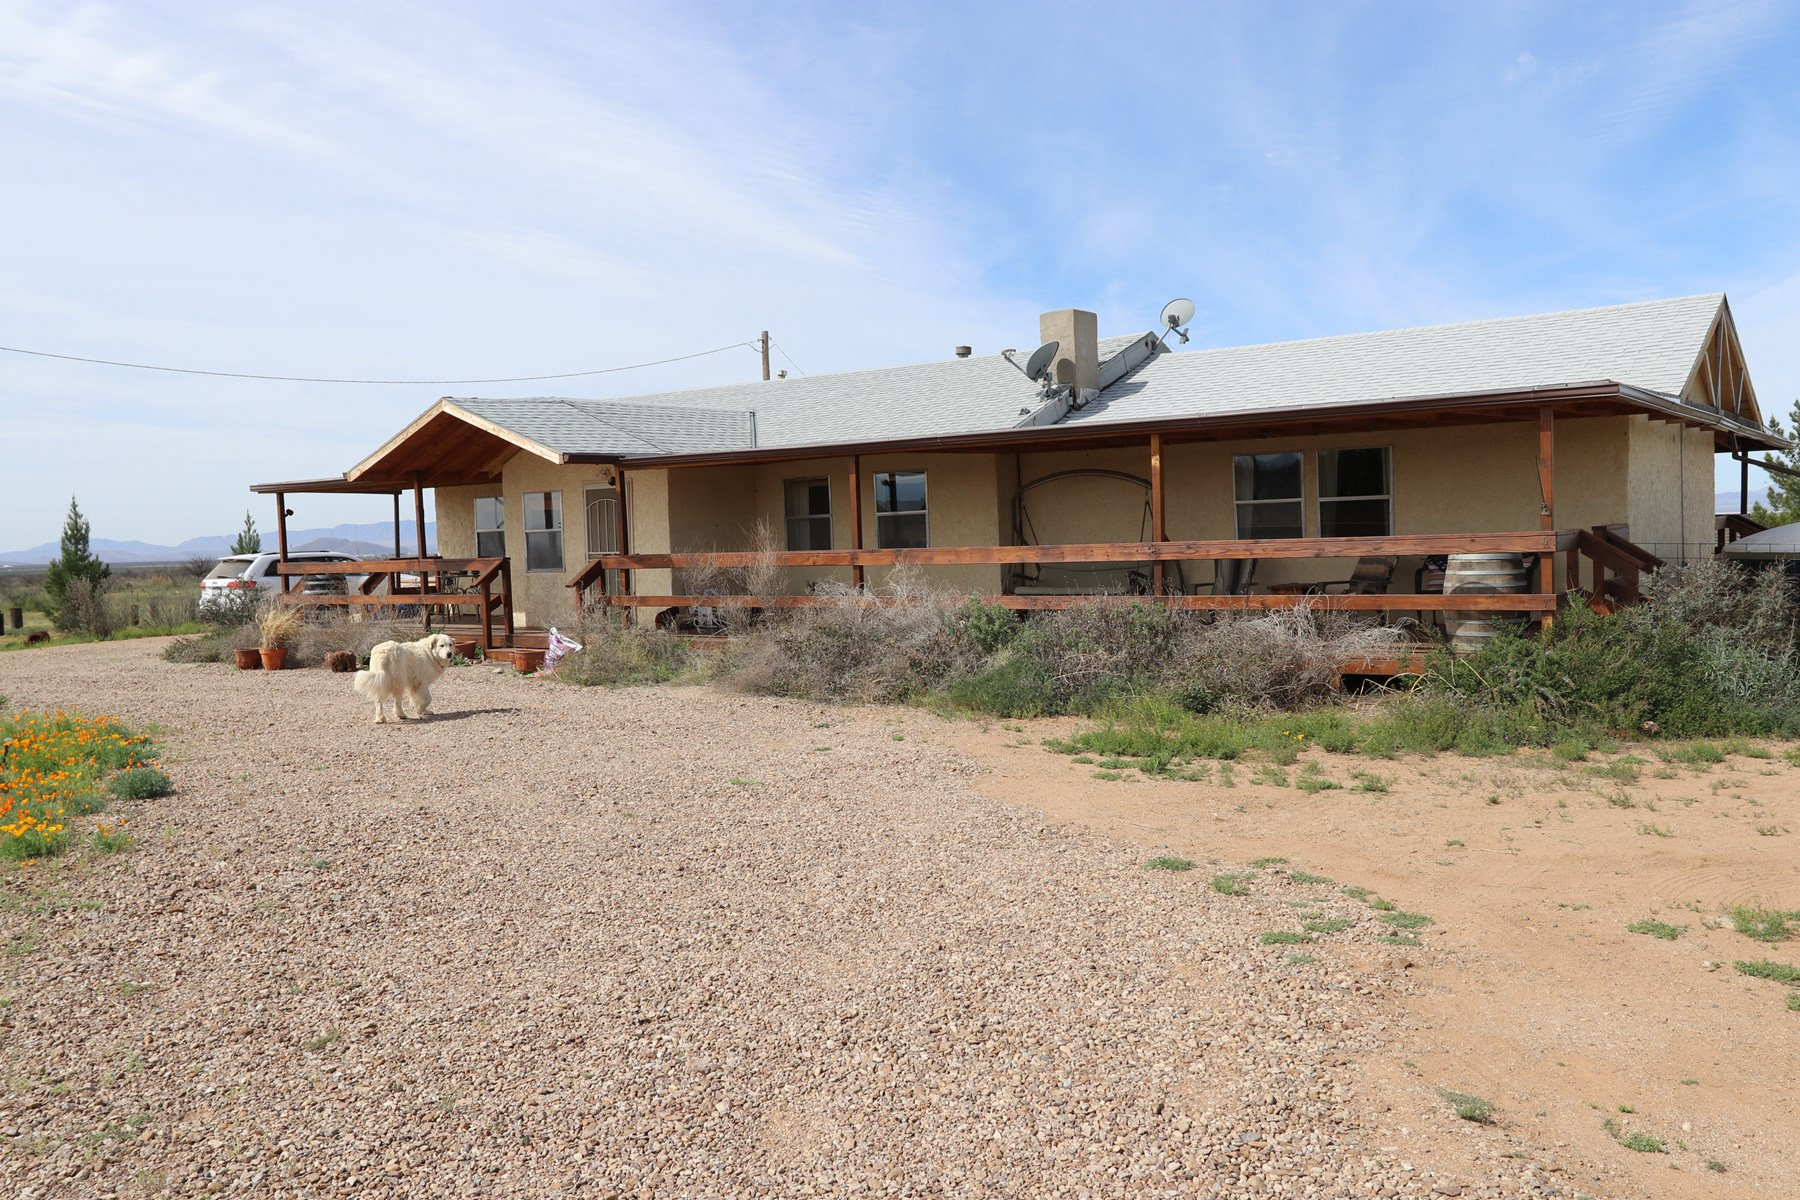 70 ACRES, HORSE FACILITIES, 2 HOUSES  Willcox AZ Wine